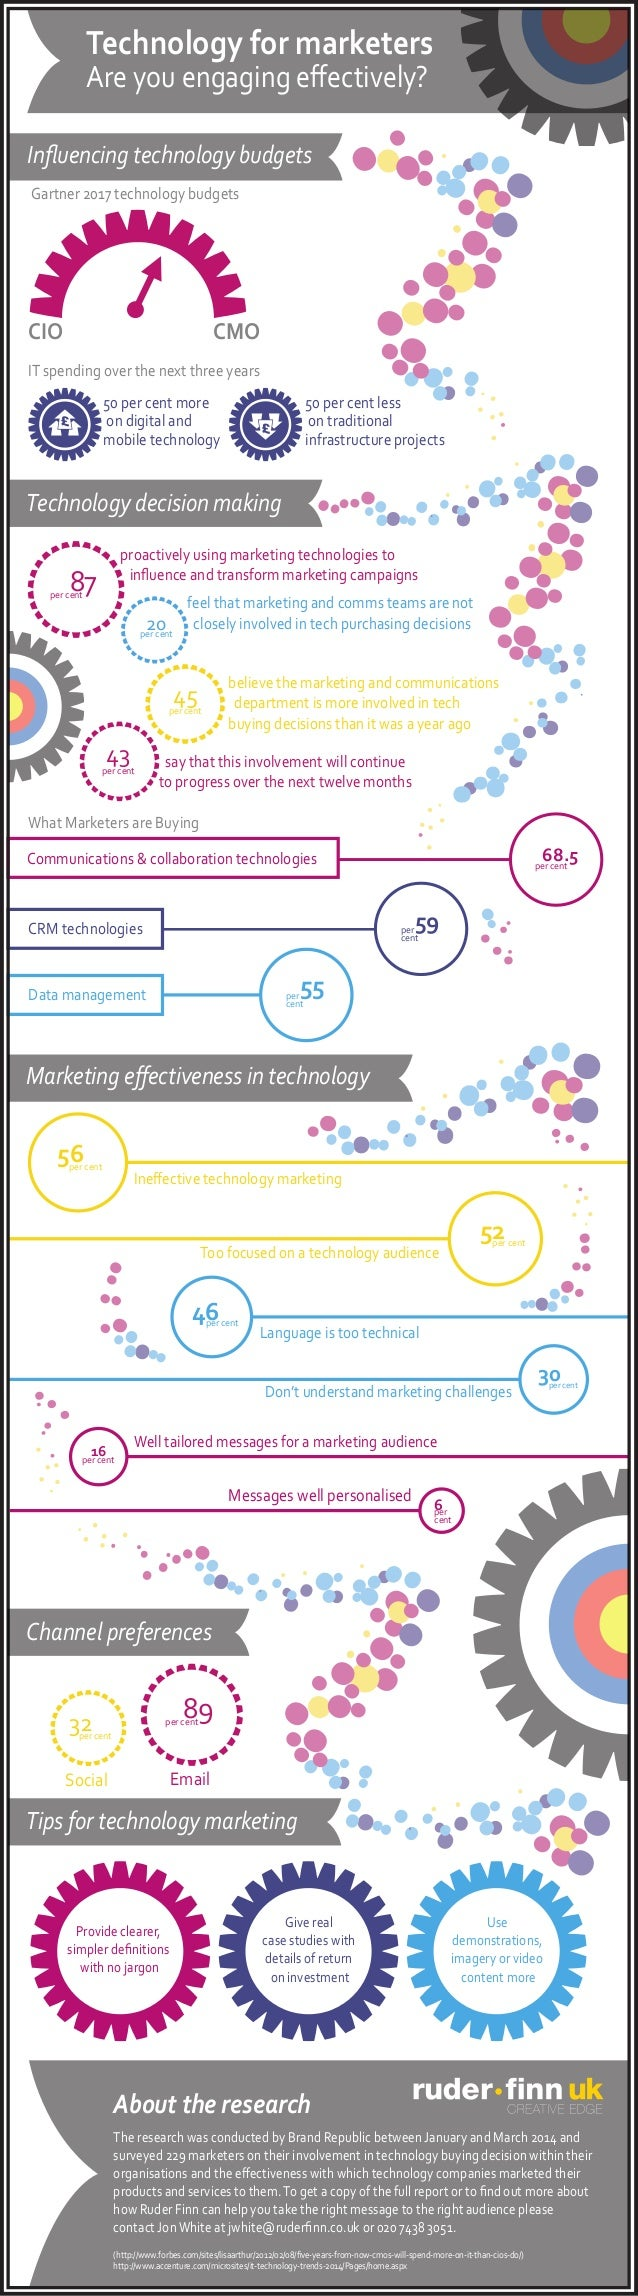 Technology for marketers Are you engaging effectively? Influencing technology budgets Technology decision making IT spending...